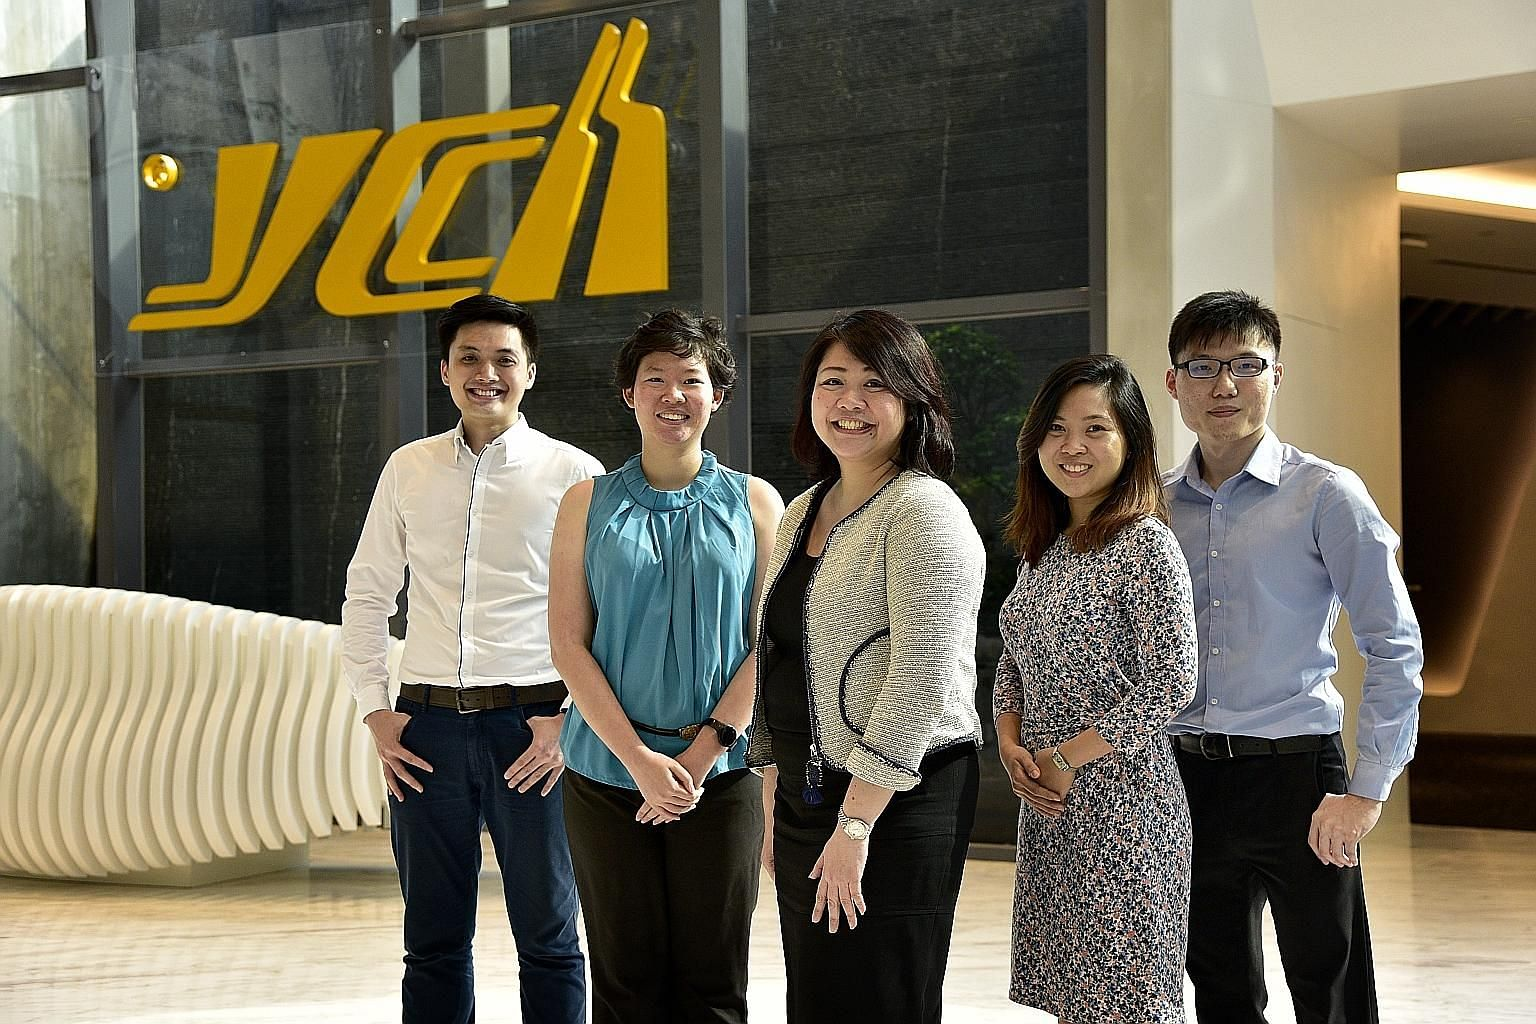 YCH Group head honcho Robert Yap, who took over in 1980, was instrumental in using technology to not only further the firm's regional expansion, but also to keep its employees ahead of the game. Staff from YCH include (from far left) Mr Ngoh Jun Dat,